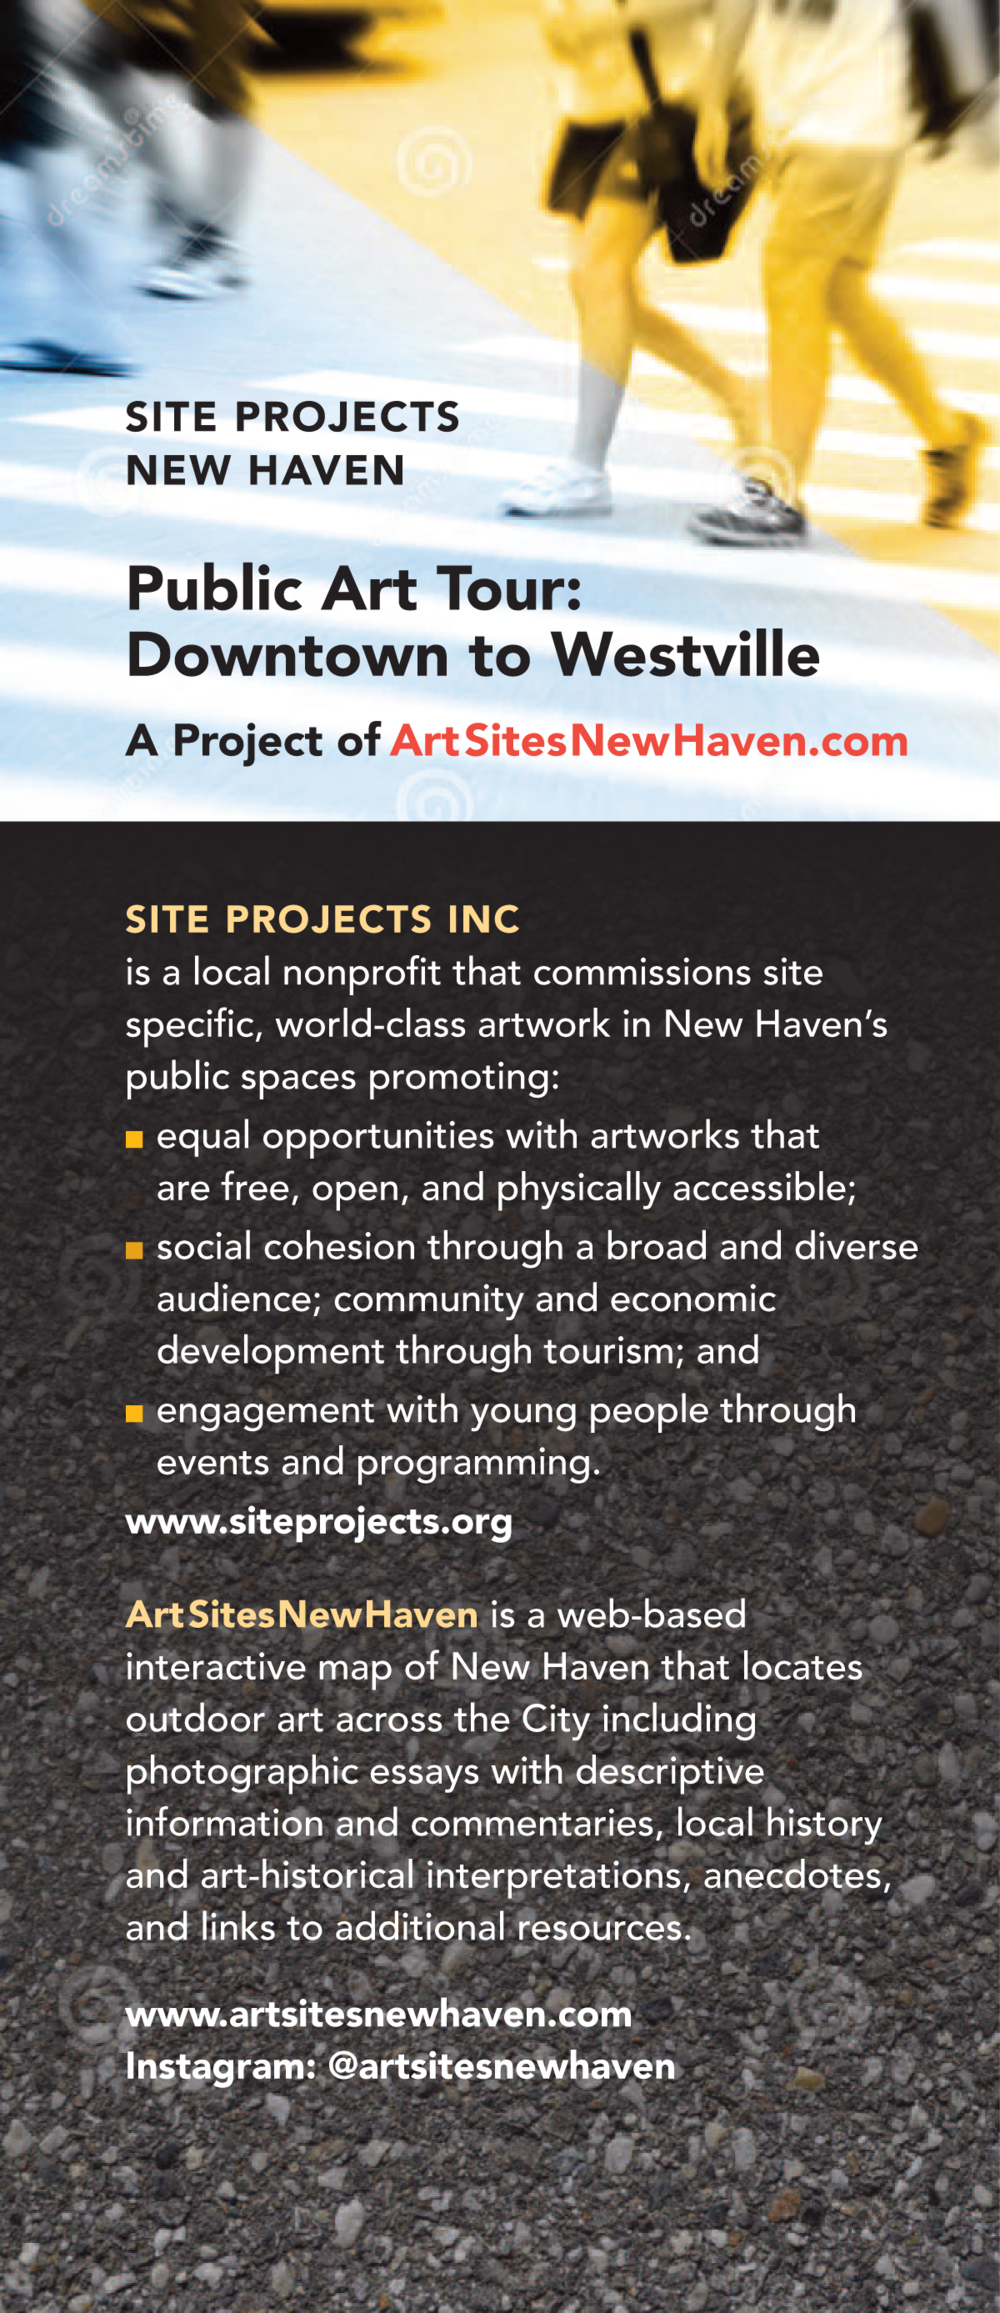 Art Sites New Haven, 2015 — Site Projects New Haven | The Public Art ...